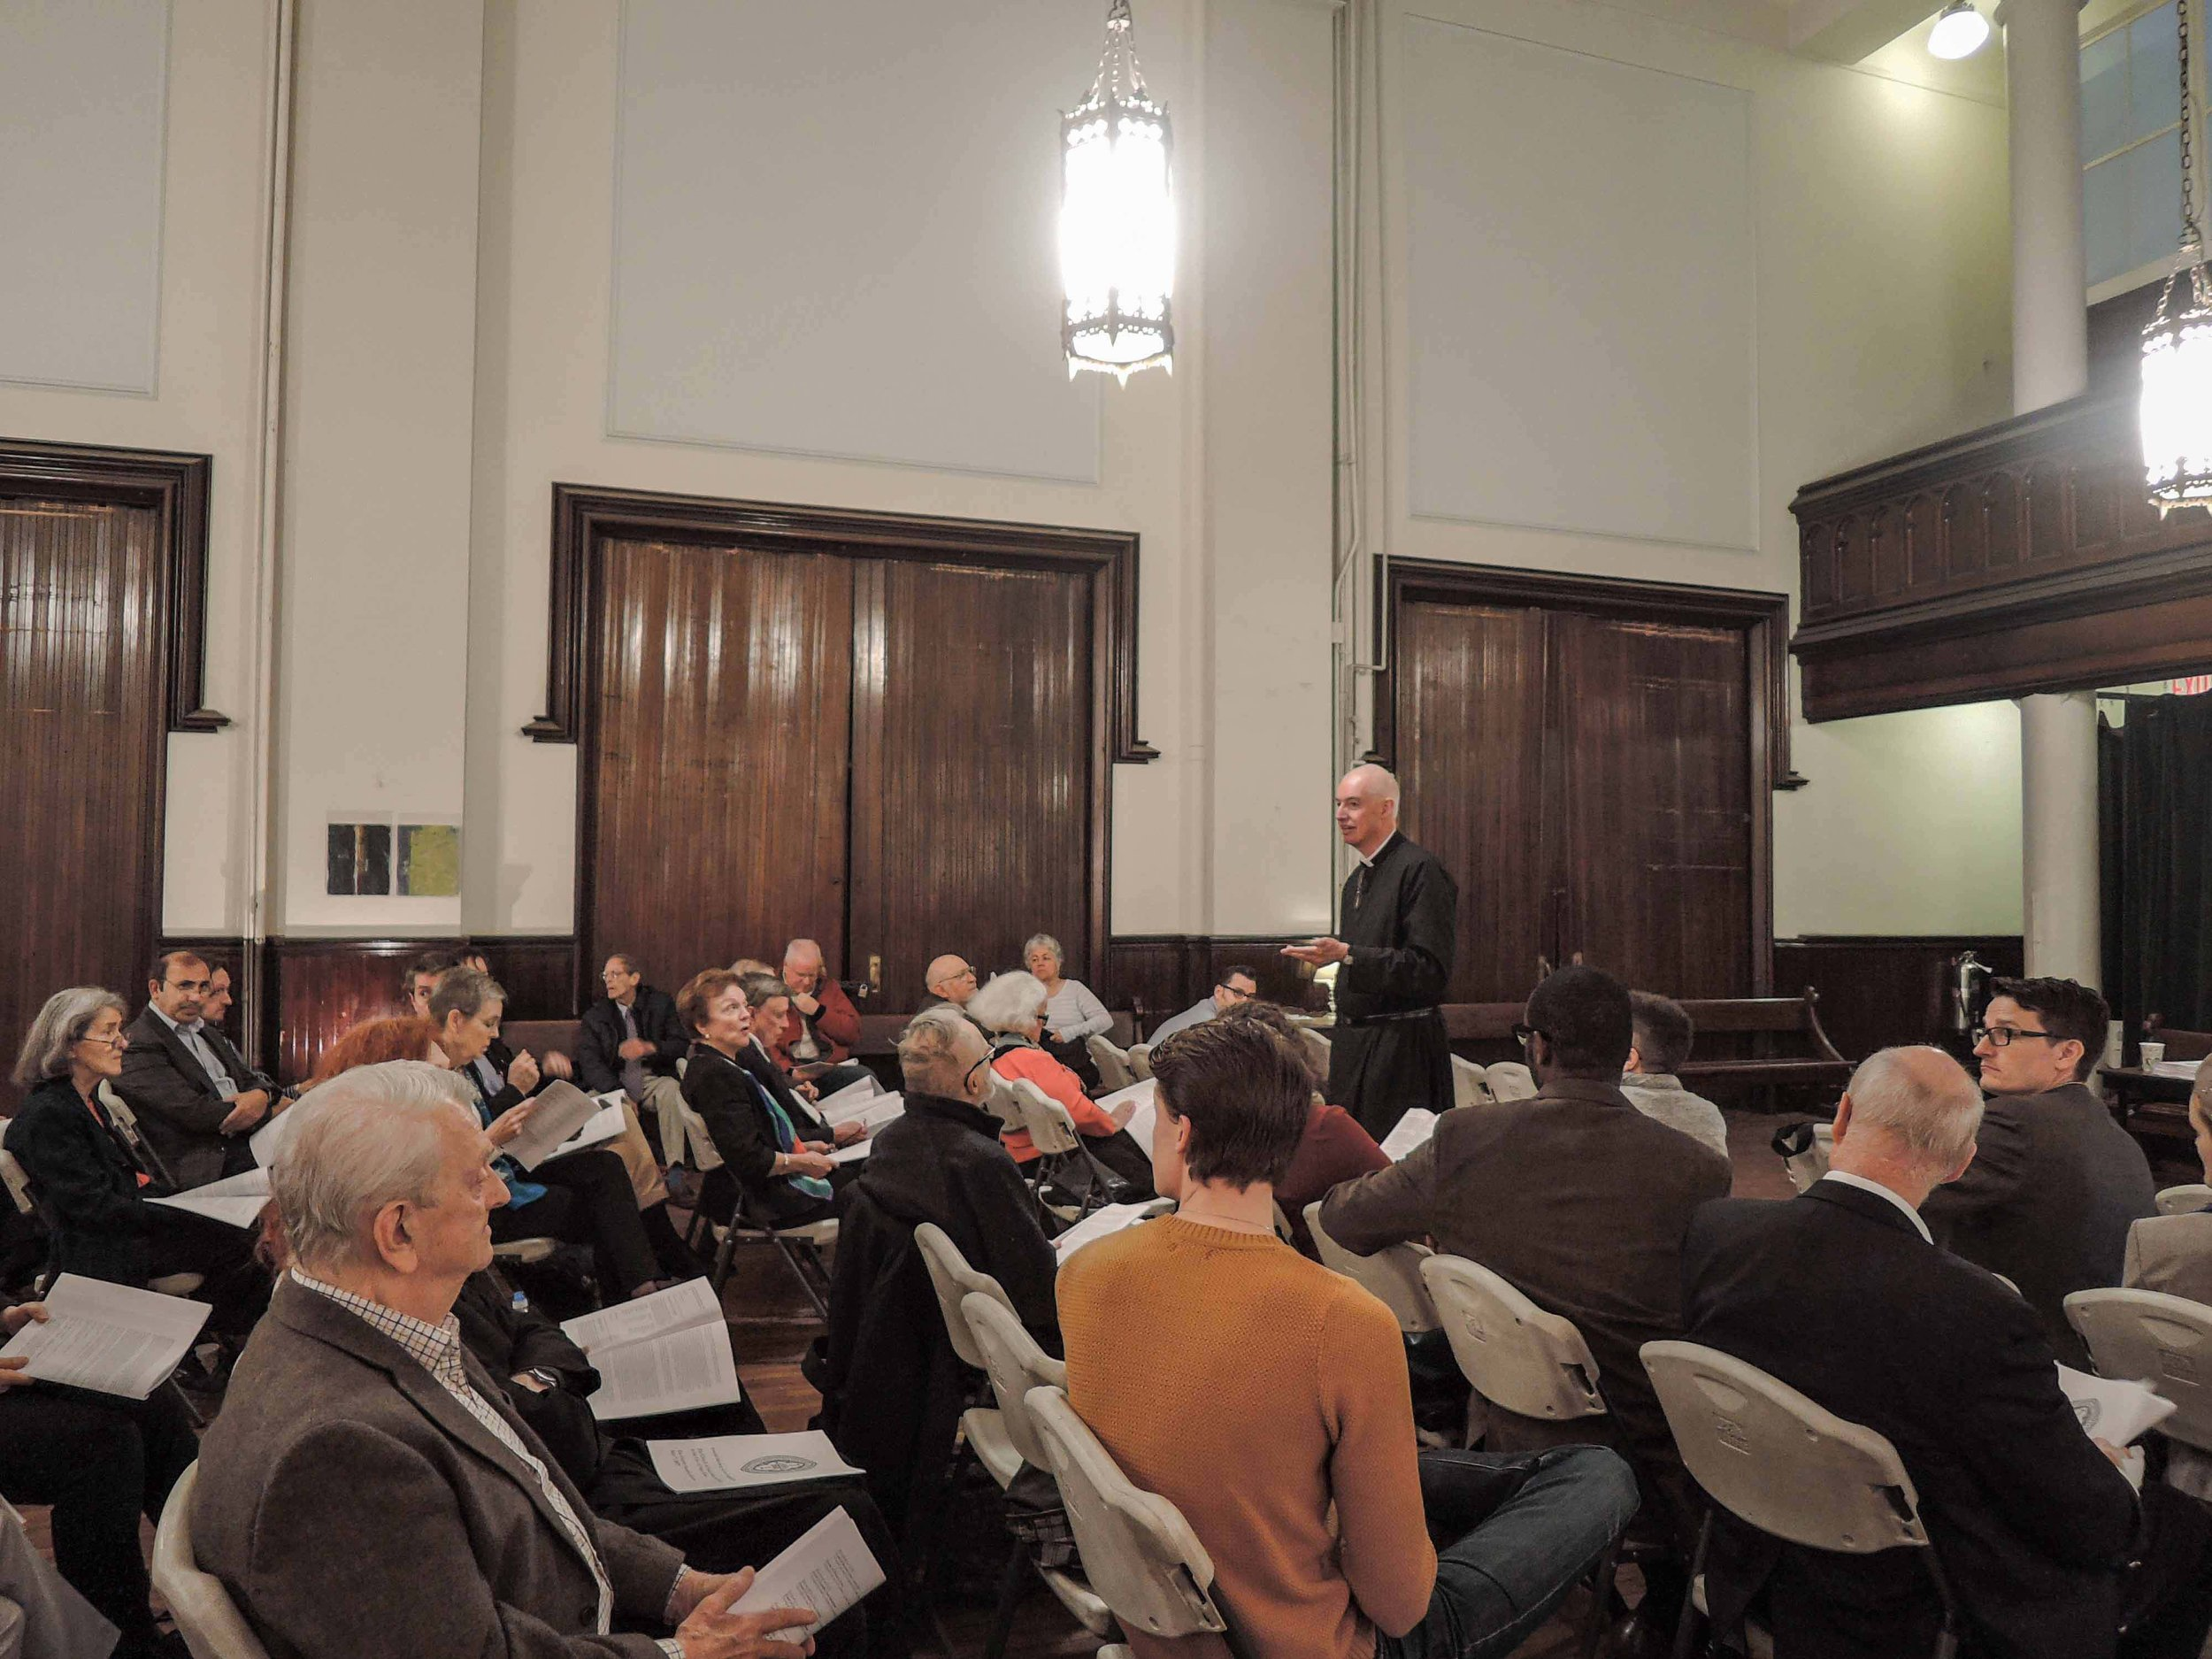 The Annual Meeting of the congregation was held after the Solemn Mass last Sunday.